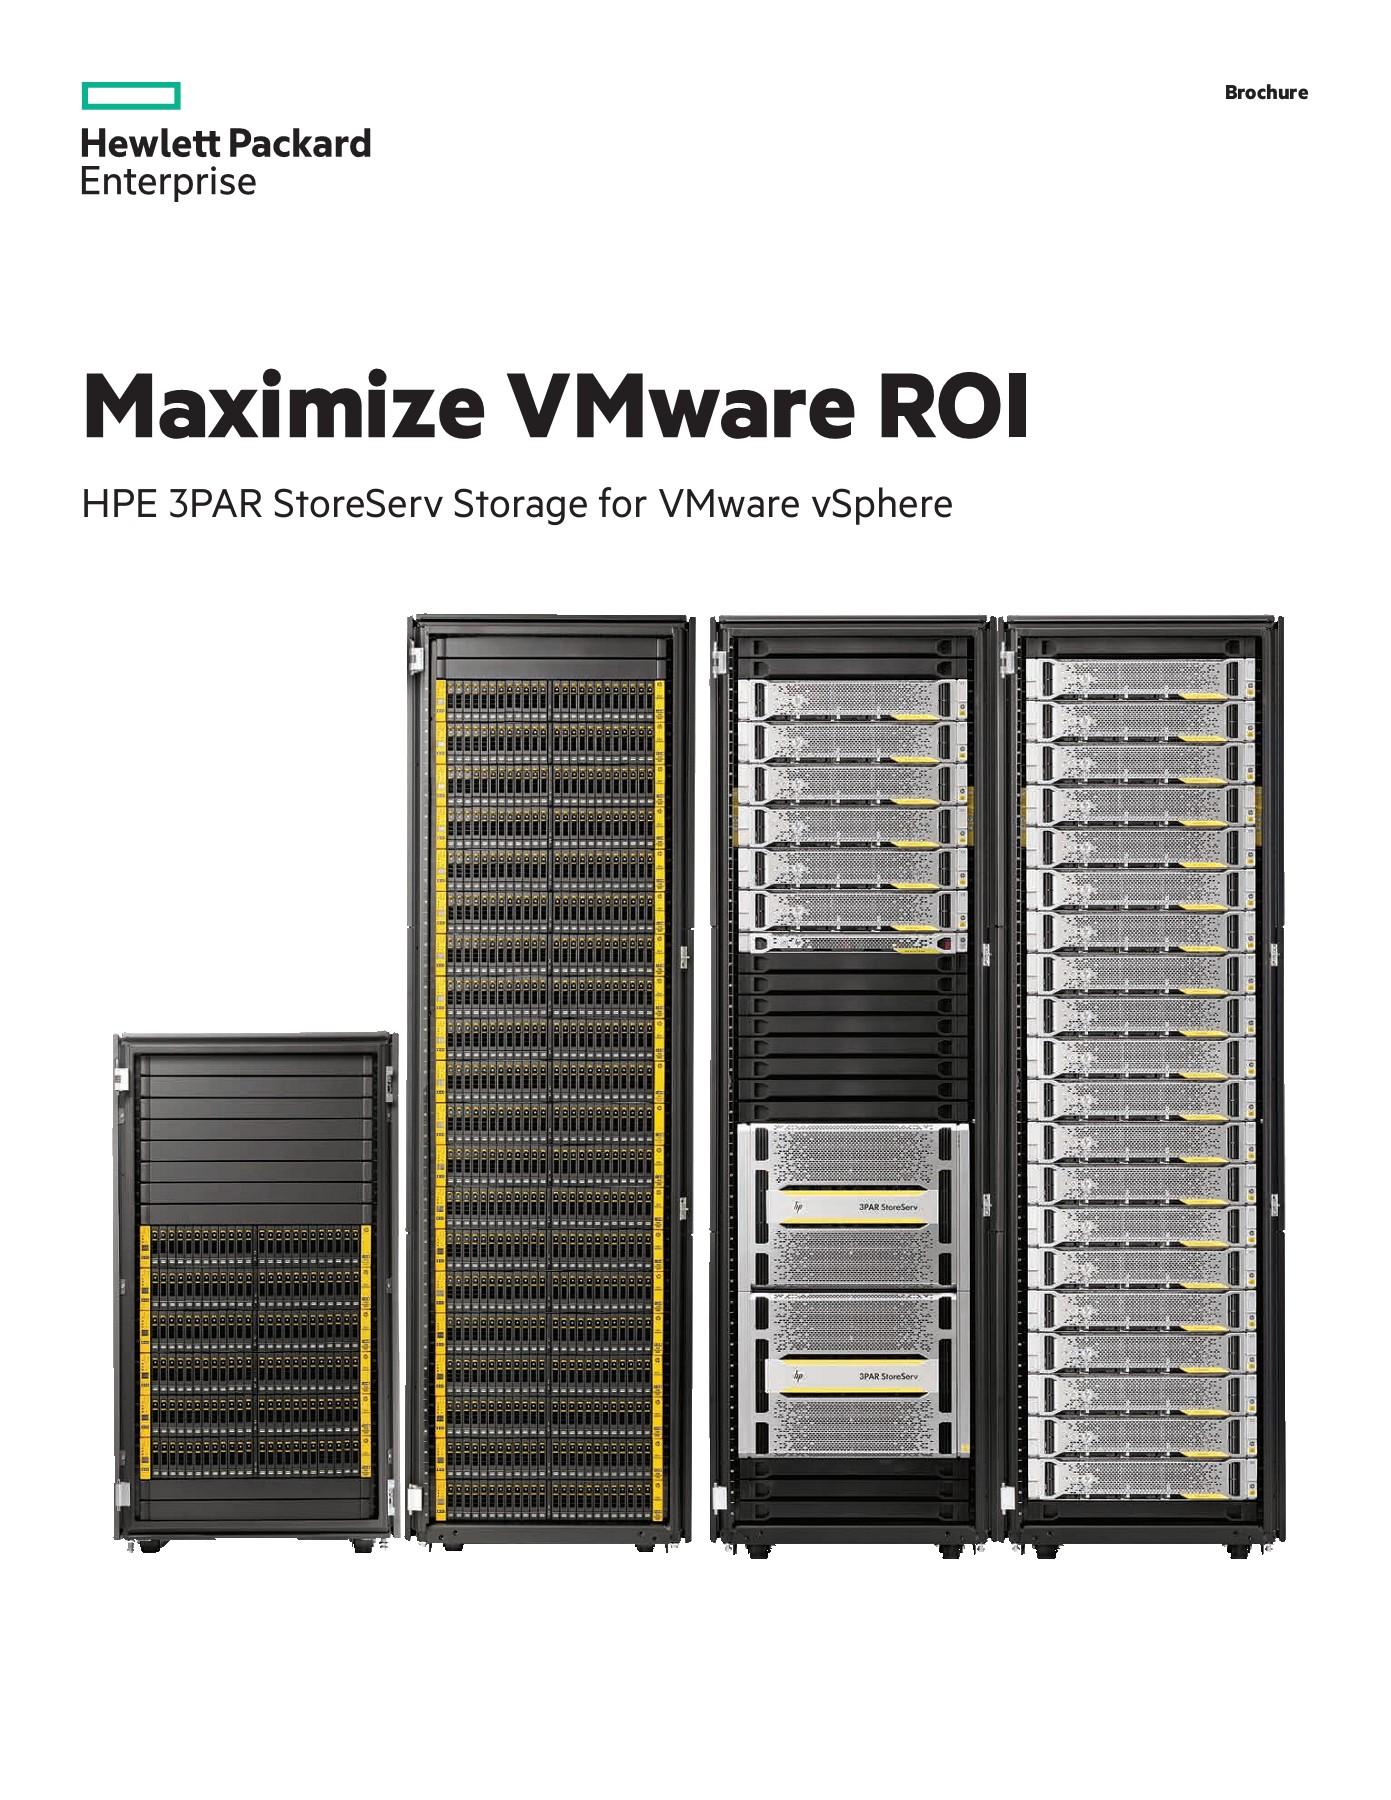 Maximize VMware ROI - Hewlett Packard Pages 1 - 12 - Text